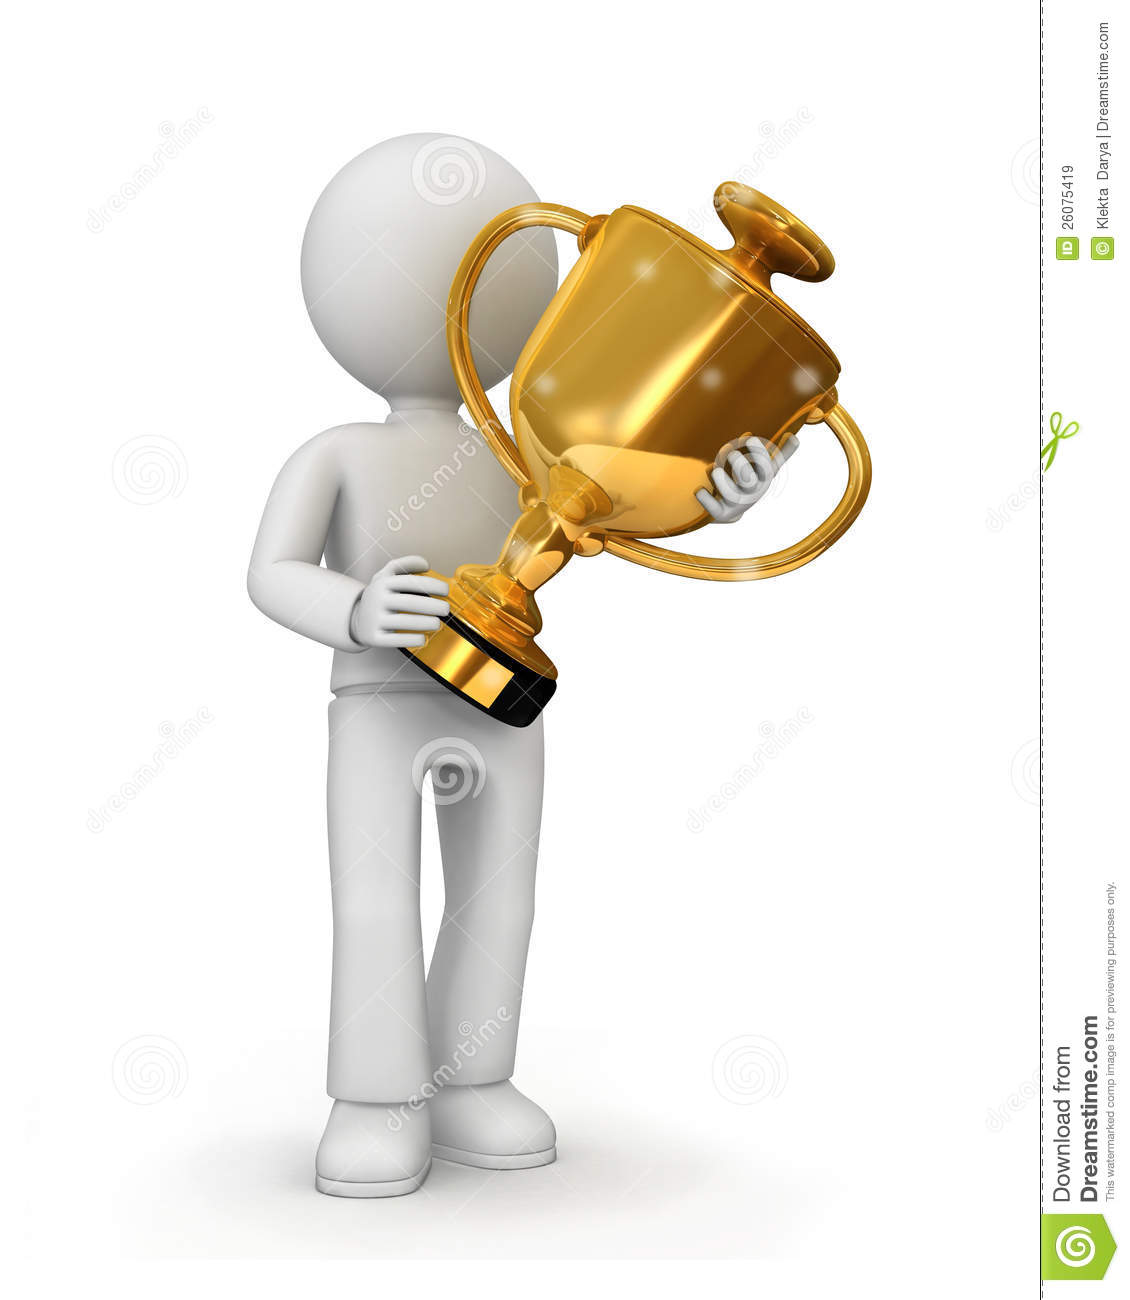 Man Holding Trophy Clipart.